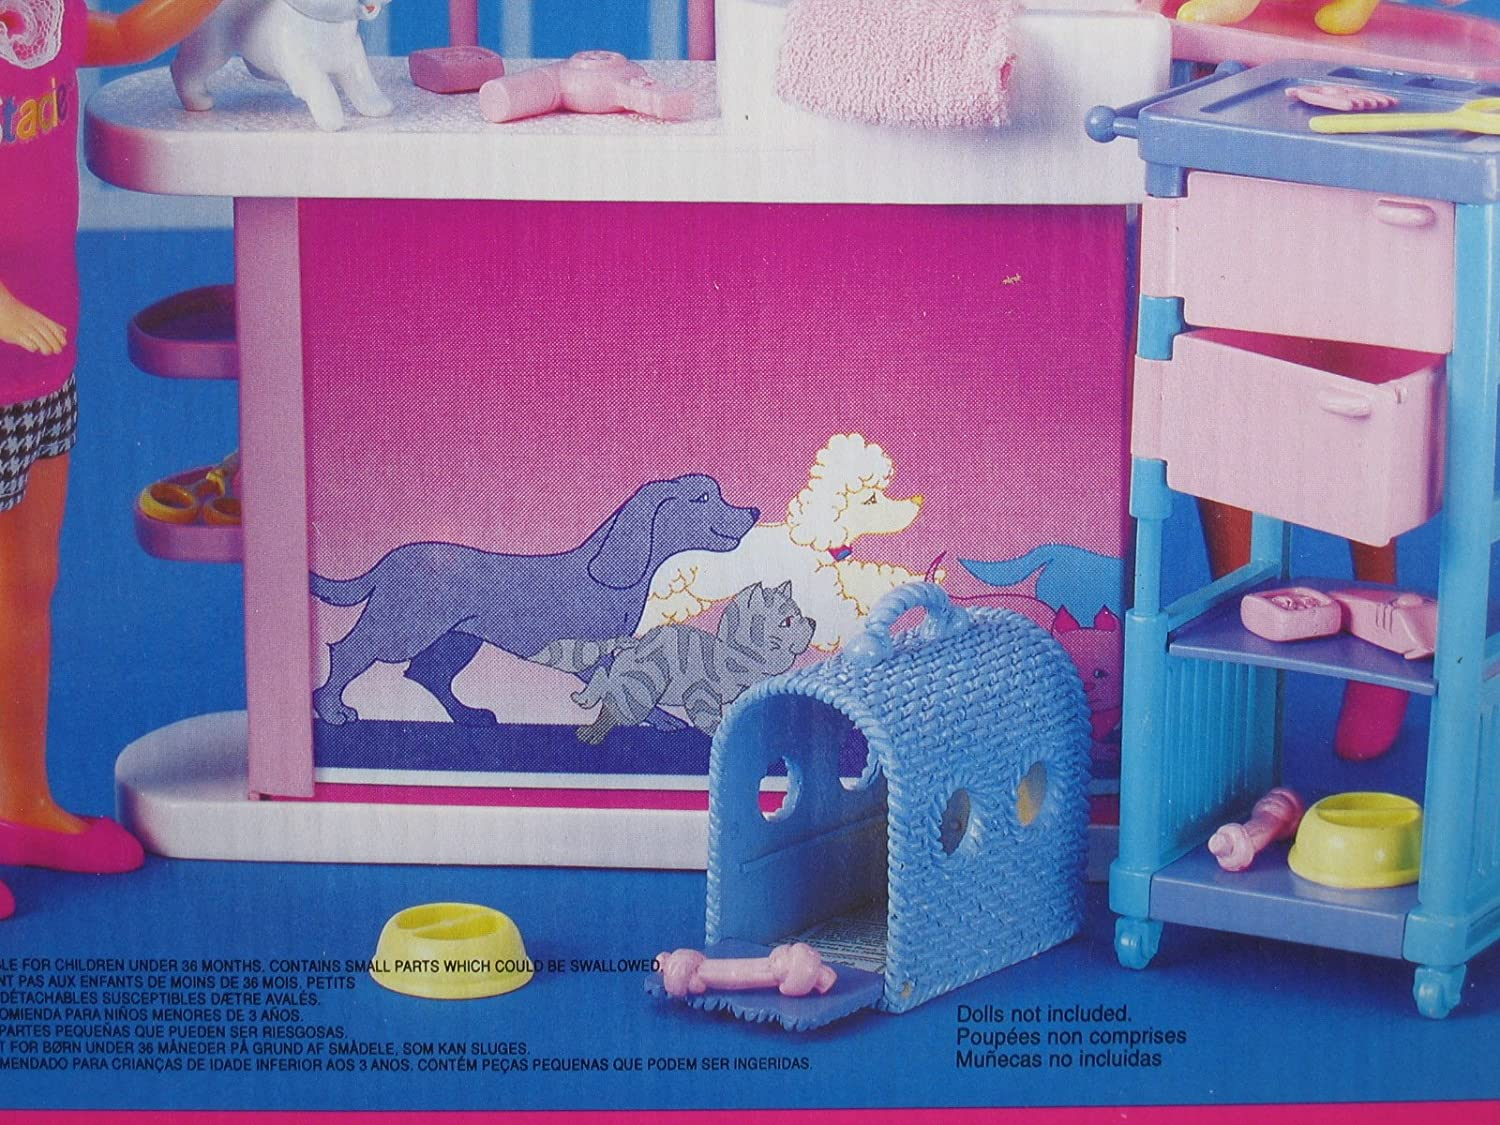 Amazon.com: Barbie So Much To Do! Pretty Pet Parlor Playset (1994 Tri-Lingual Box): Toys & Games